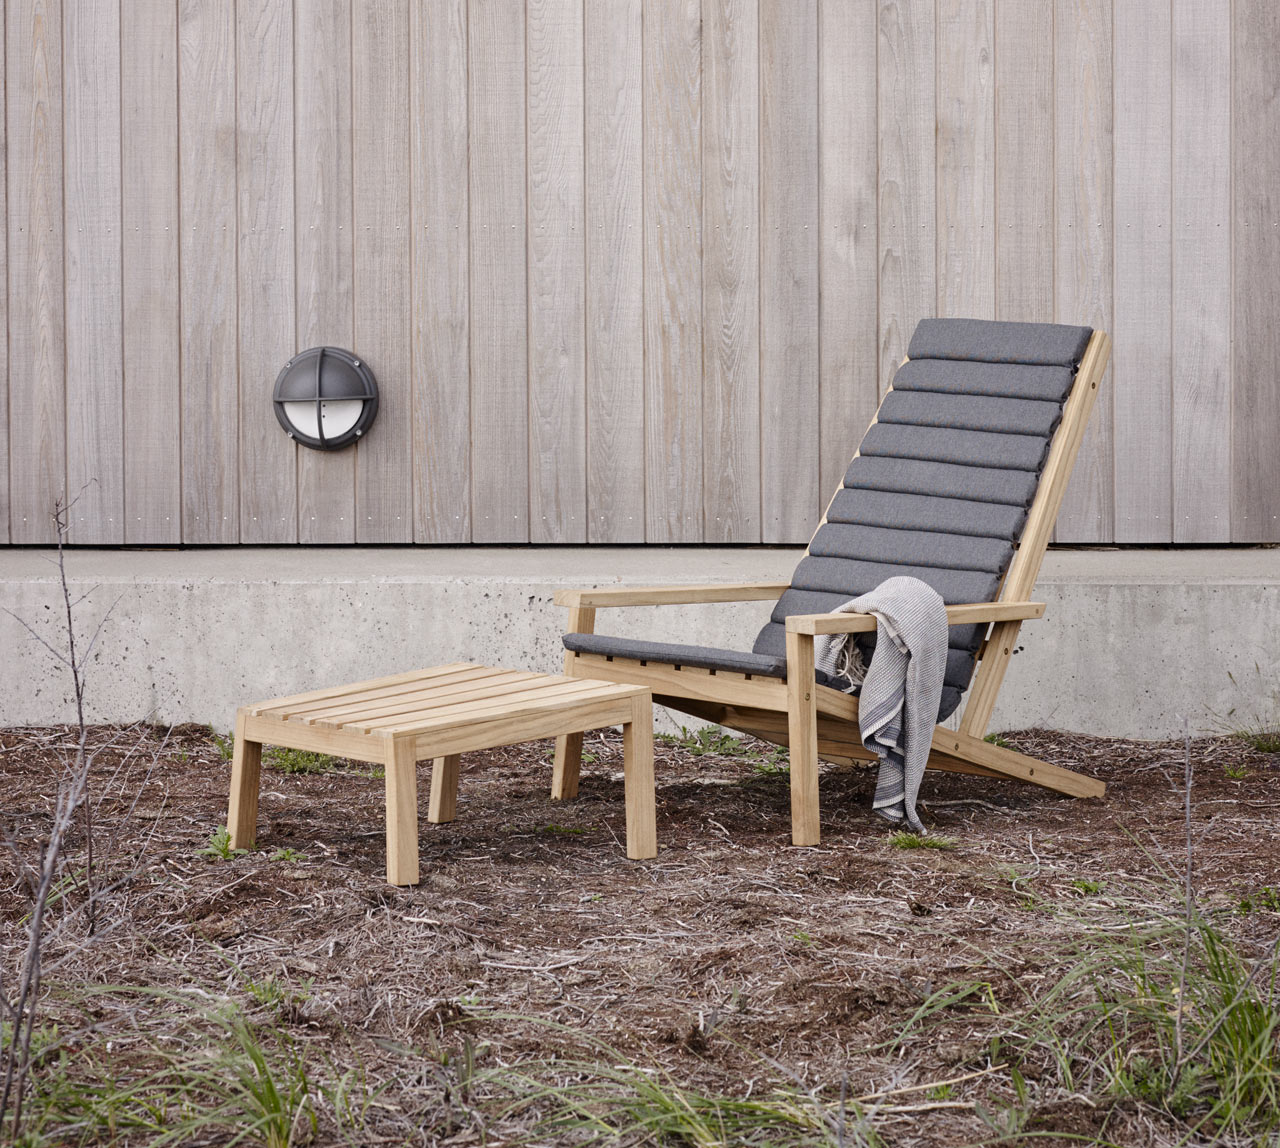 Inspirational New Wooden Outdoor Furniture from Skagerak